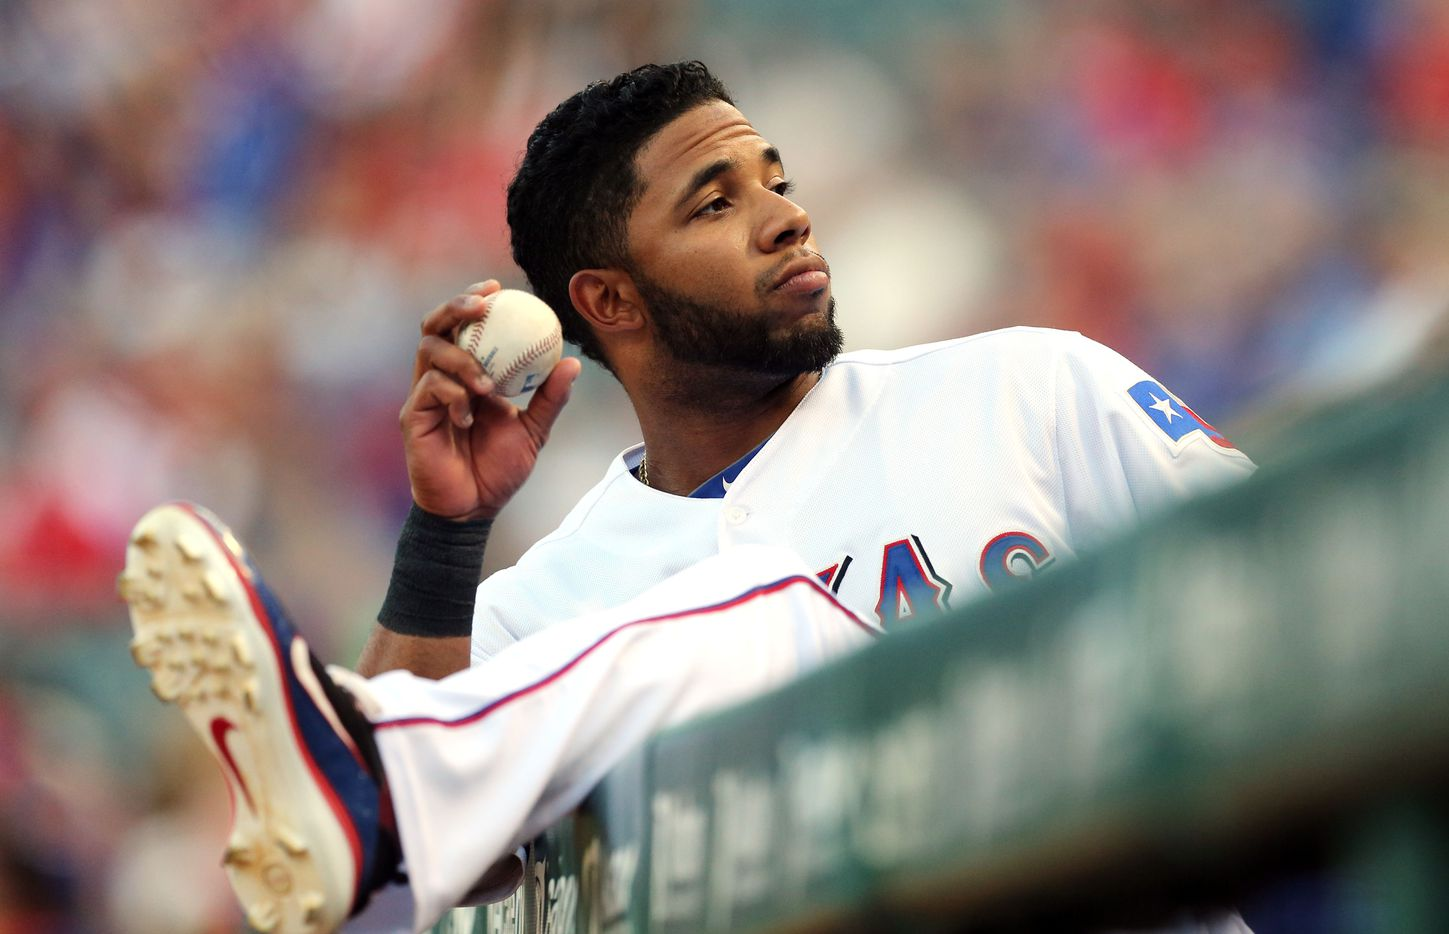 Texas shortstop Elvis Andrus throws a ball to a fan from the dugout before the Minnesota Twins vs. Texas Rangers major league baseball game at Rangers Ballpark in Arlington on Friday, August 24, 2012.  (Louis DeLuca/The Dallas Morning News) / mug - mugshot - headshot - portrait / 01232013xALDIA